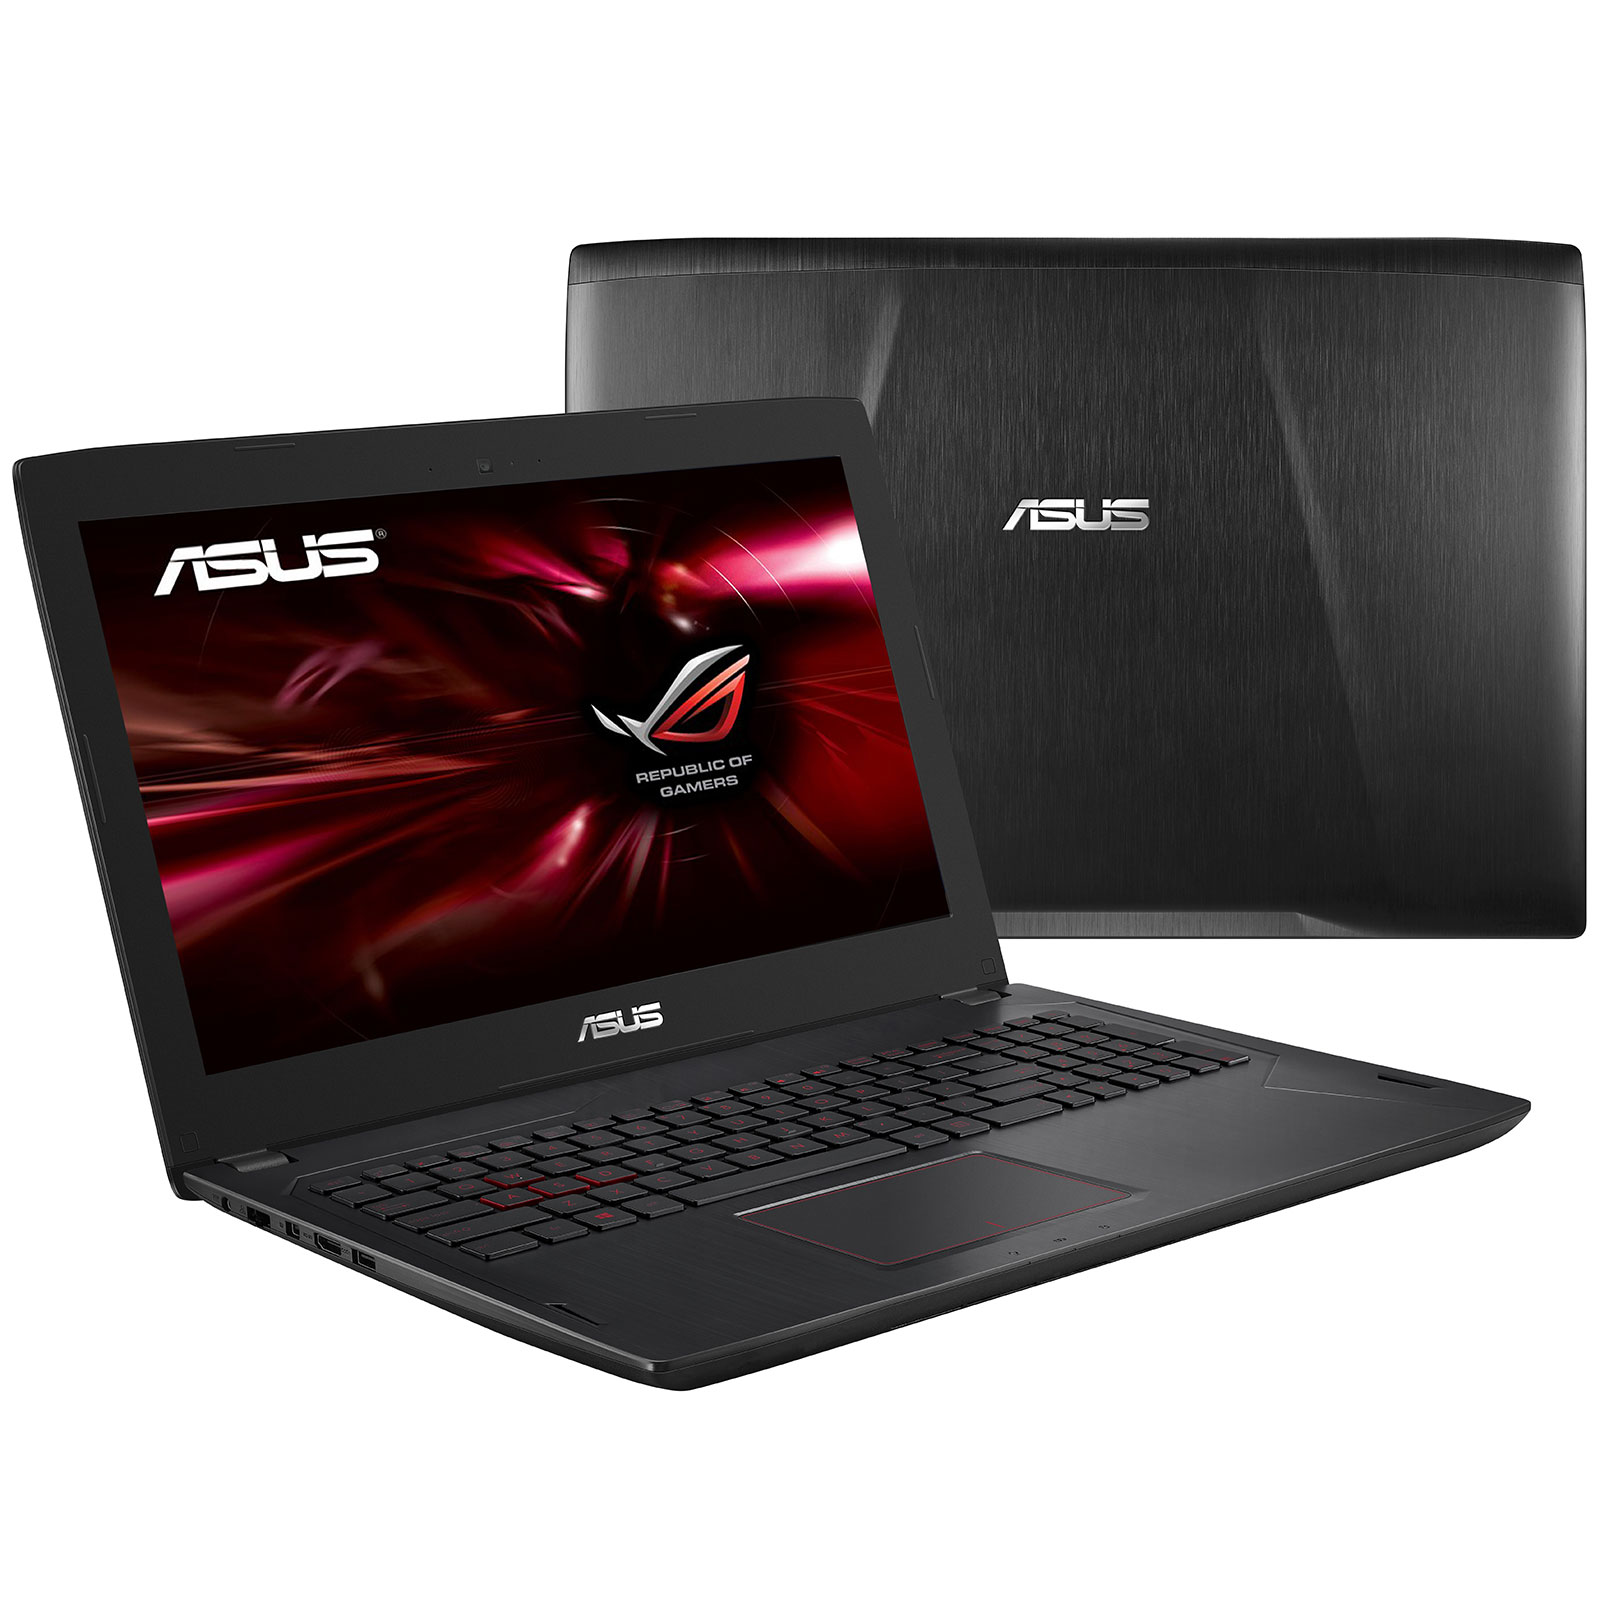 asus fx753vd gc012 pc portable asus sur. Black Bedroom Furniture Sets. Home Design Ideas